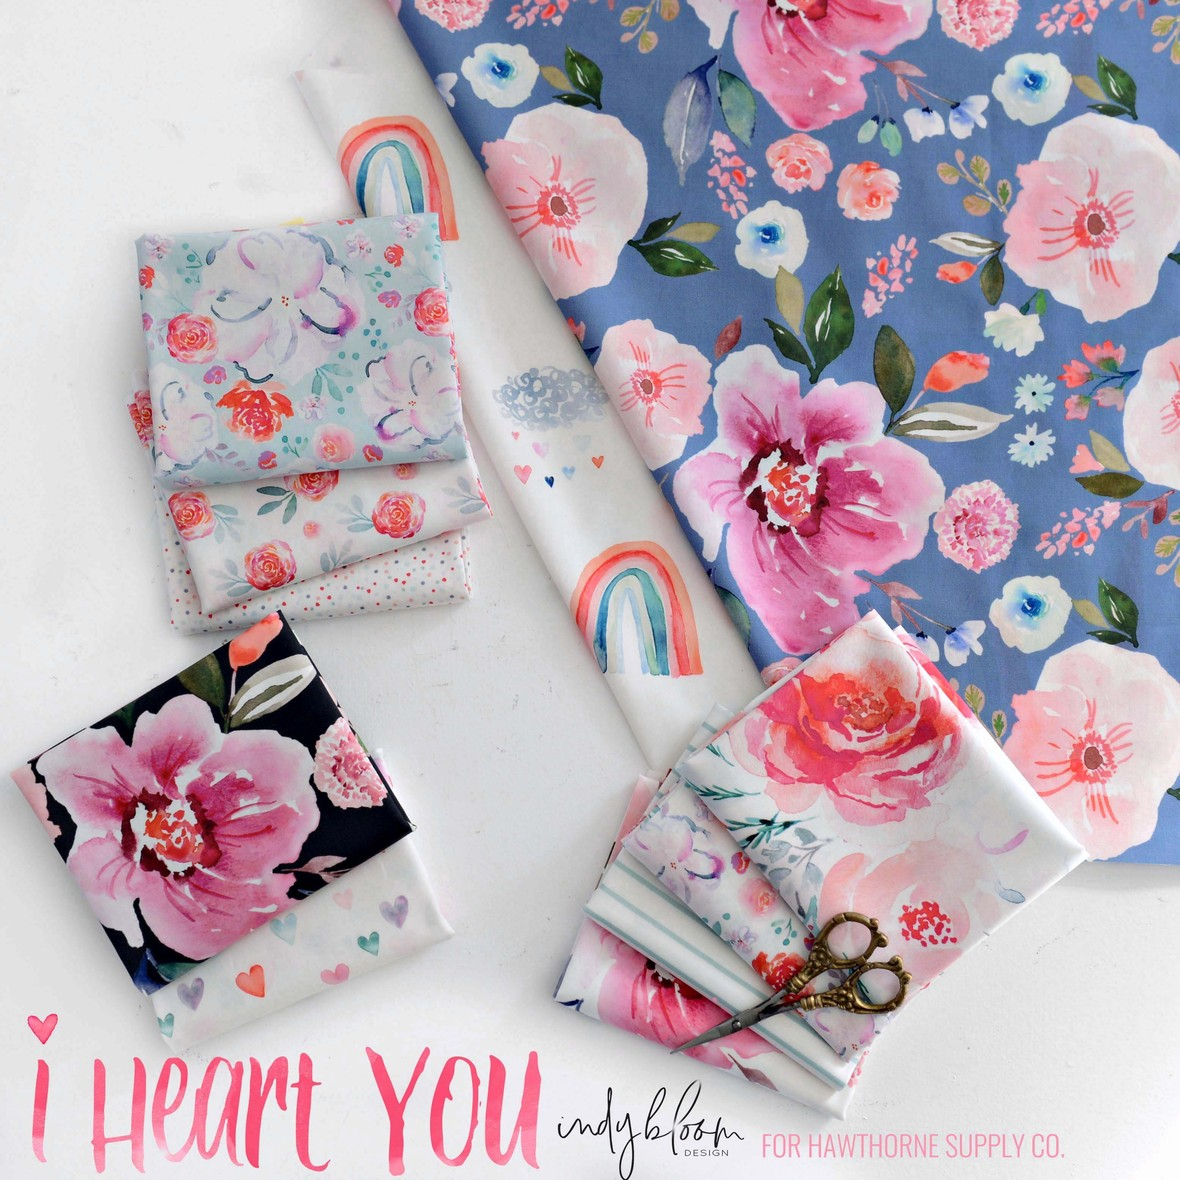 Indy bloom I Heart You Fabric Poster  at Hawthorne Supply Co c